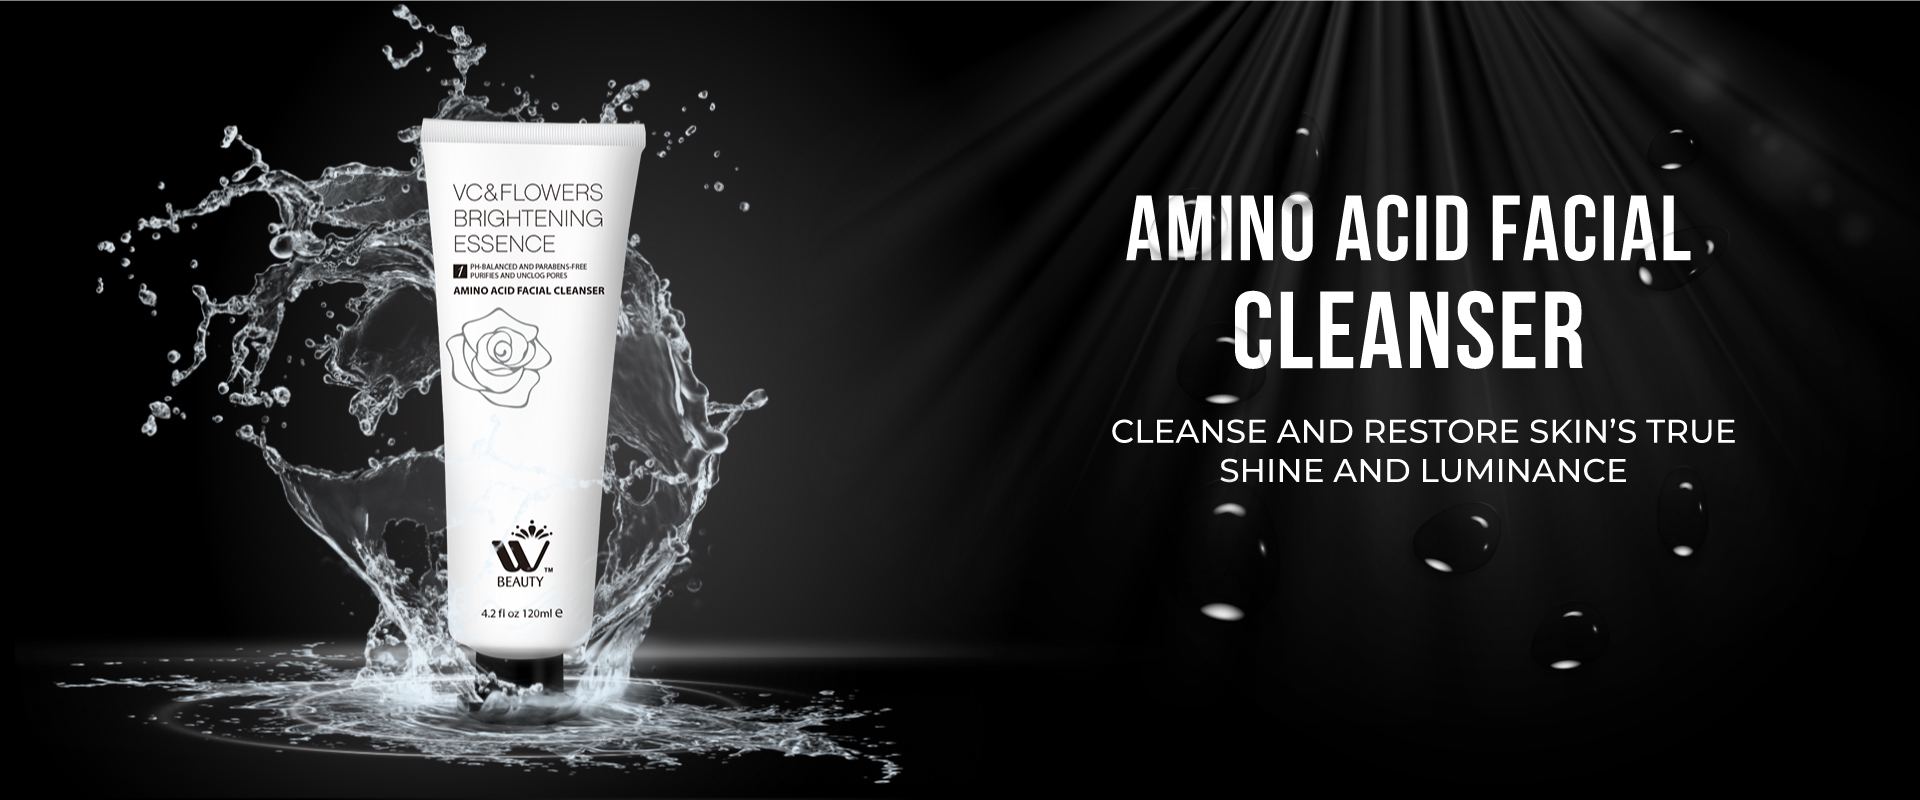 LONG-LASTING DEEP CLEANSE WITH EVERY DROP